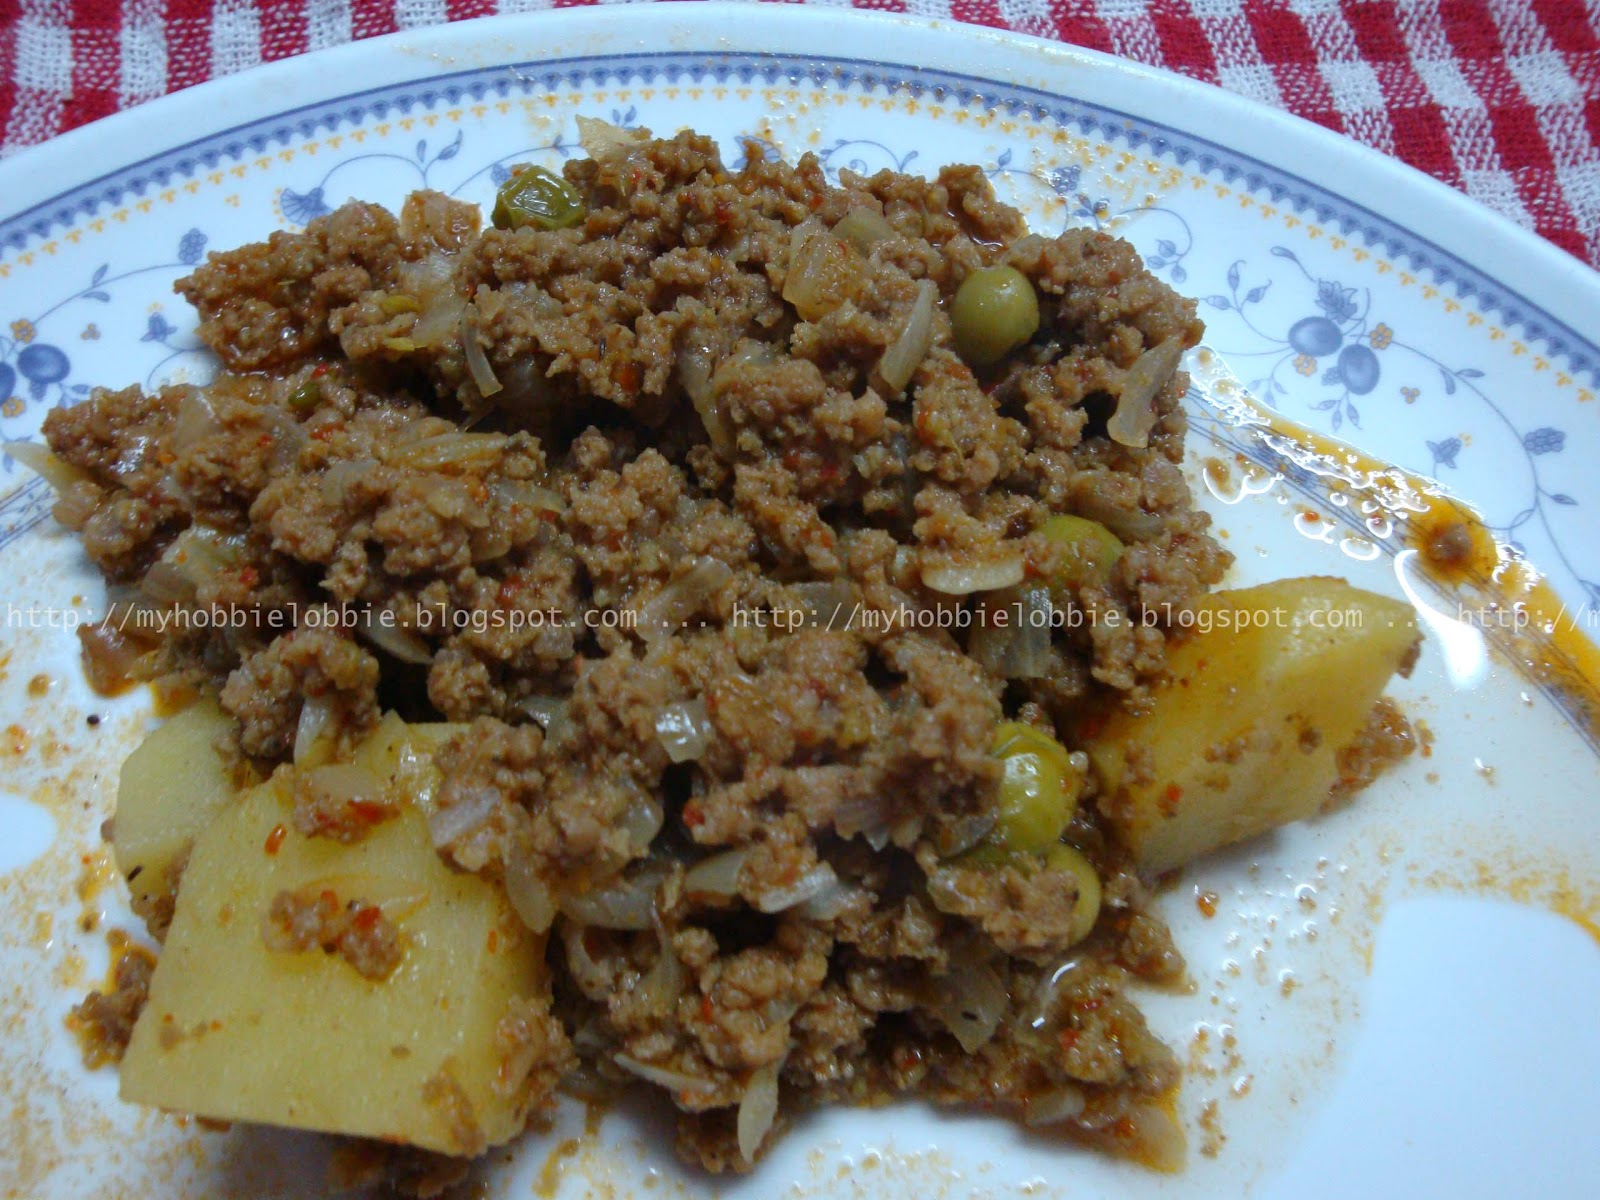 ... Hobbie Lobbie: Beef Mince with Potatoes and Peas - a.k.a Beef Kheema